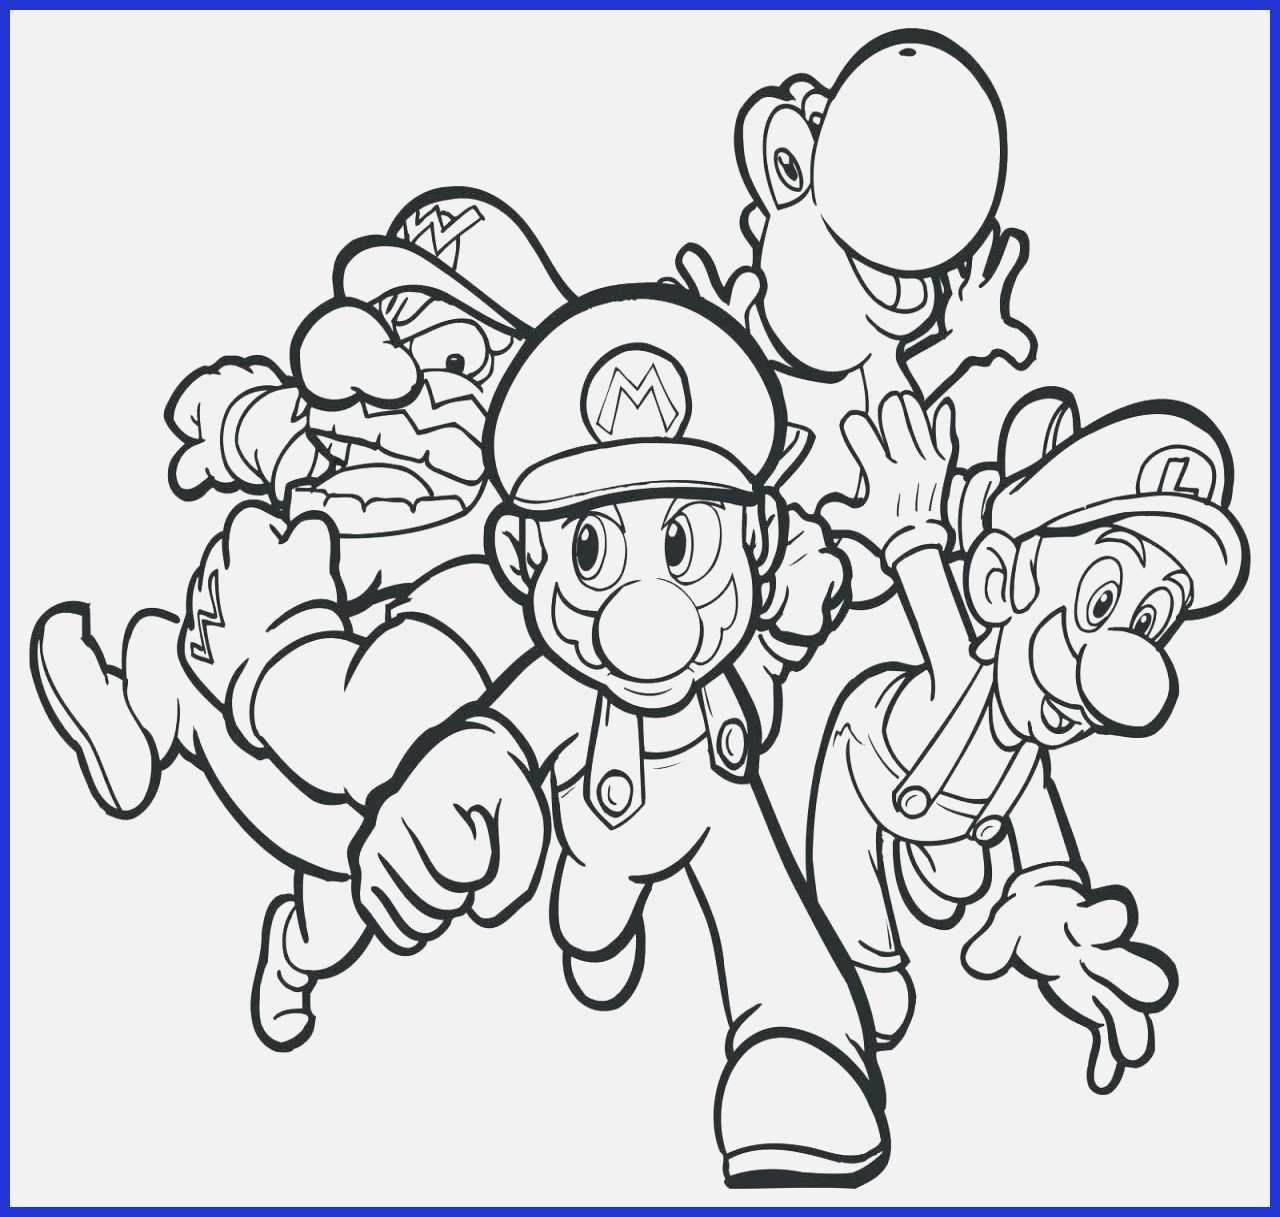 Nick Jr Coloring Pages Fresh Nick Jr Coloring Pages New 16